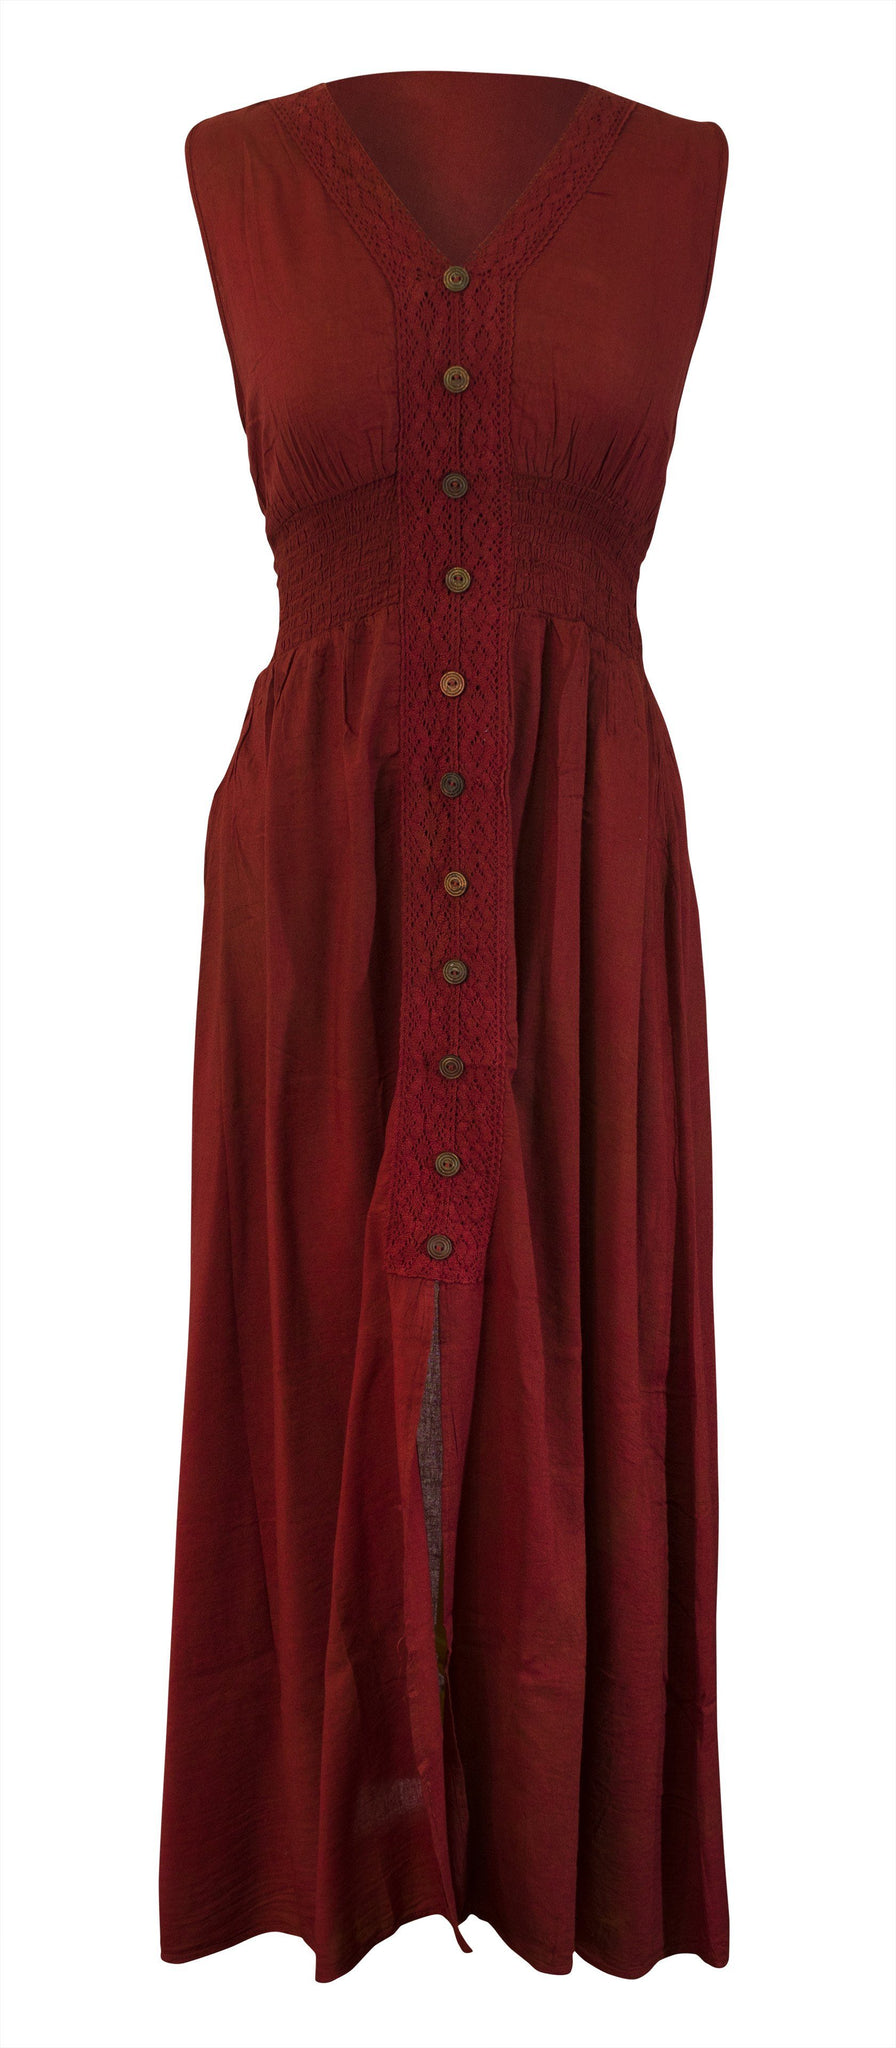 Cotton Maxi Dress Smocked Waist V Neck Wood Button - CCCollections